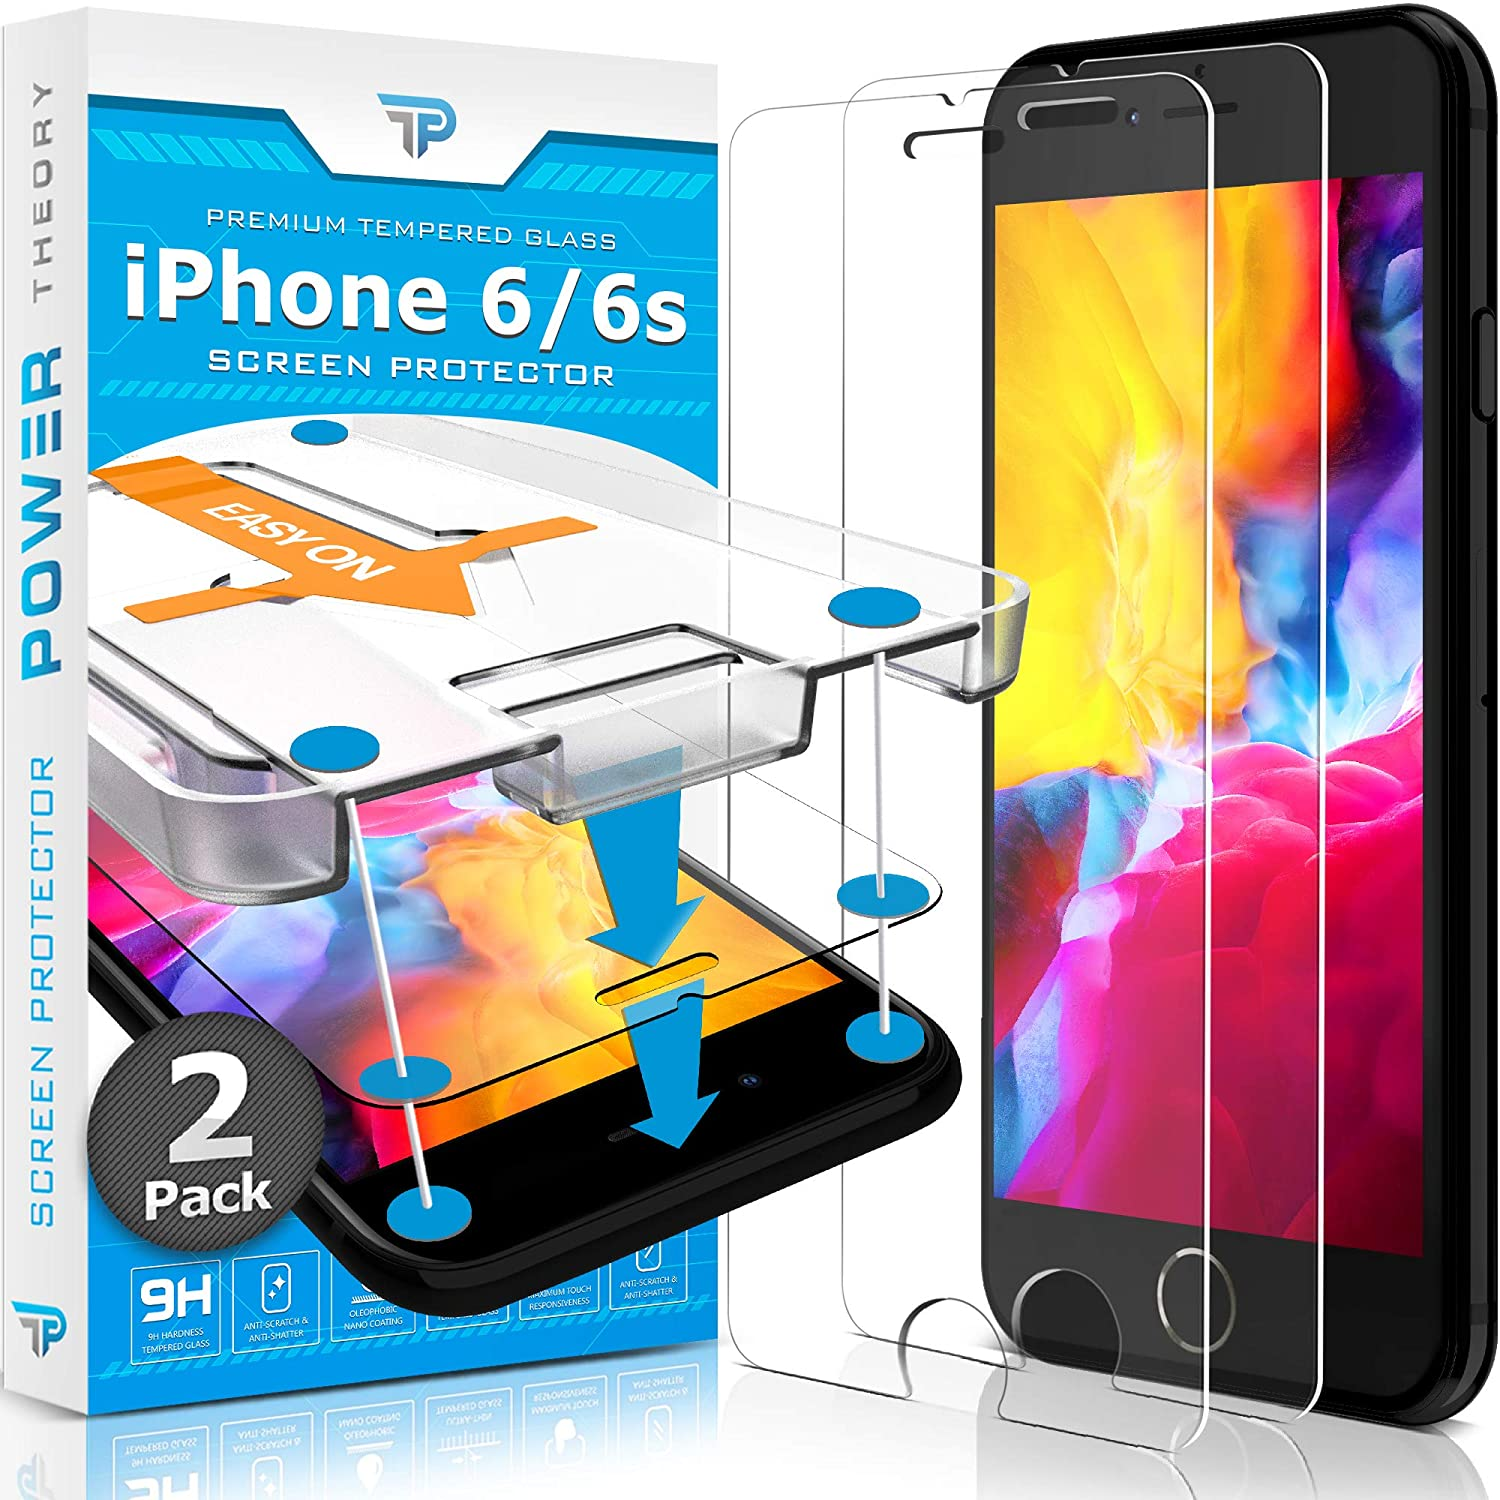 Power Theory iPhone 6s / iPhone 6 Glass Screen Protector [2-Pack]